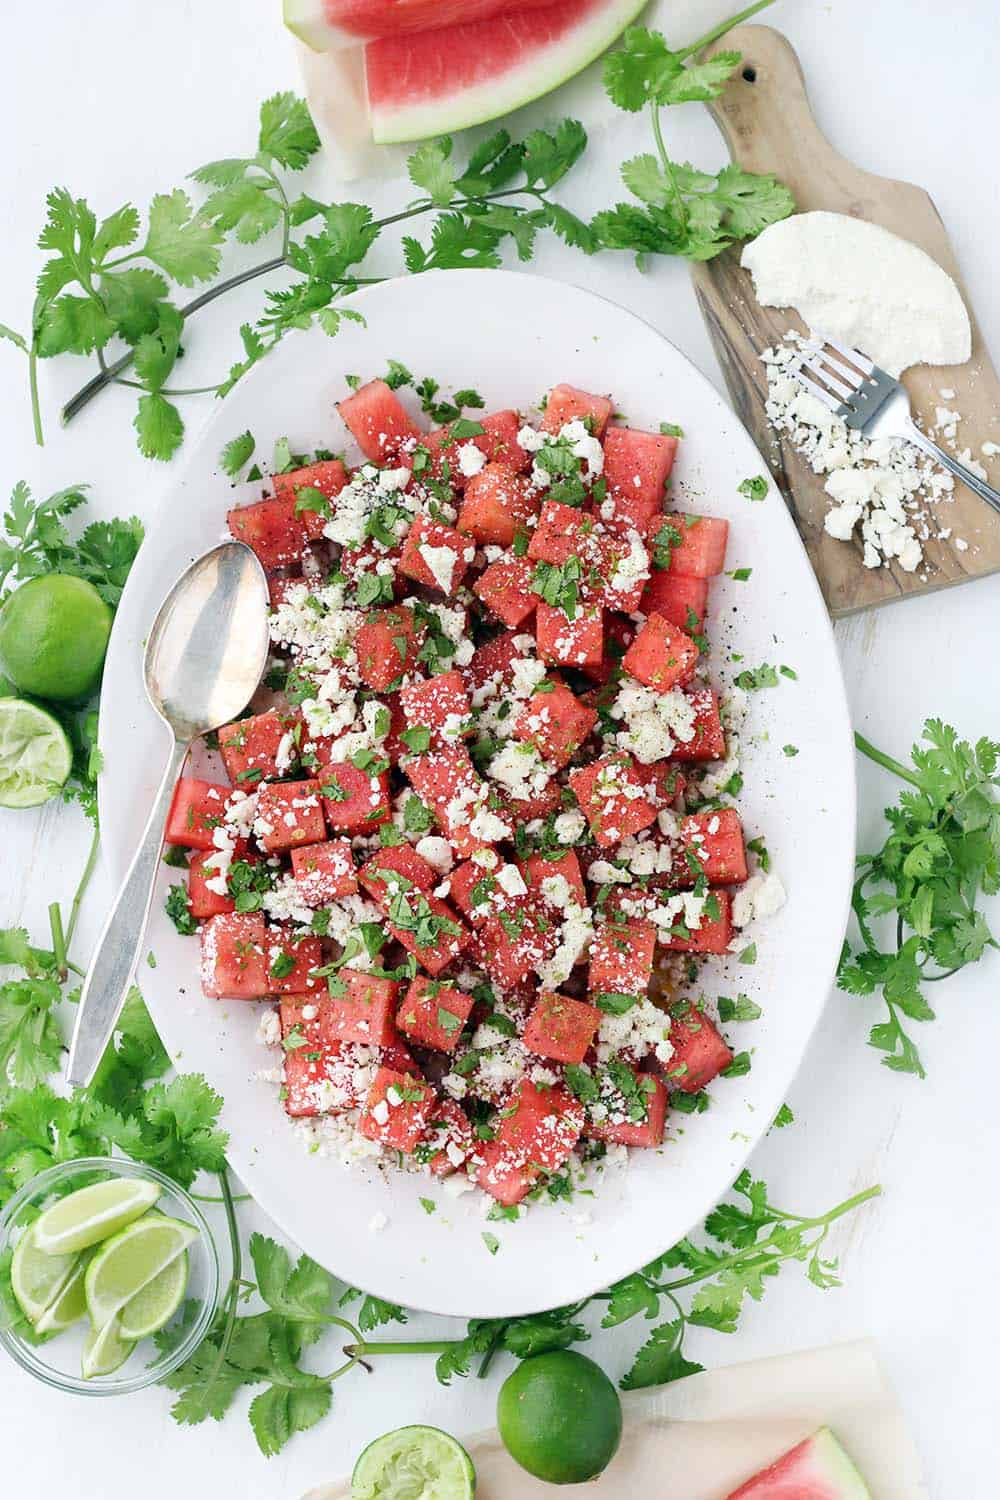 This refreshing watermelon salad with queso fresco, lime, and cilantro is the perfect balance of sweet and salty! It's easy to make this vegetarian side dish in advance and perfect for your summer festivities.